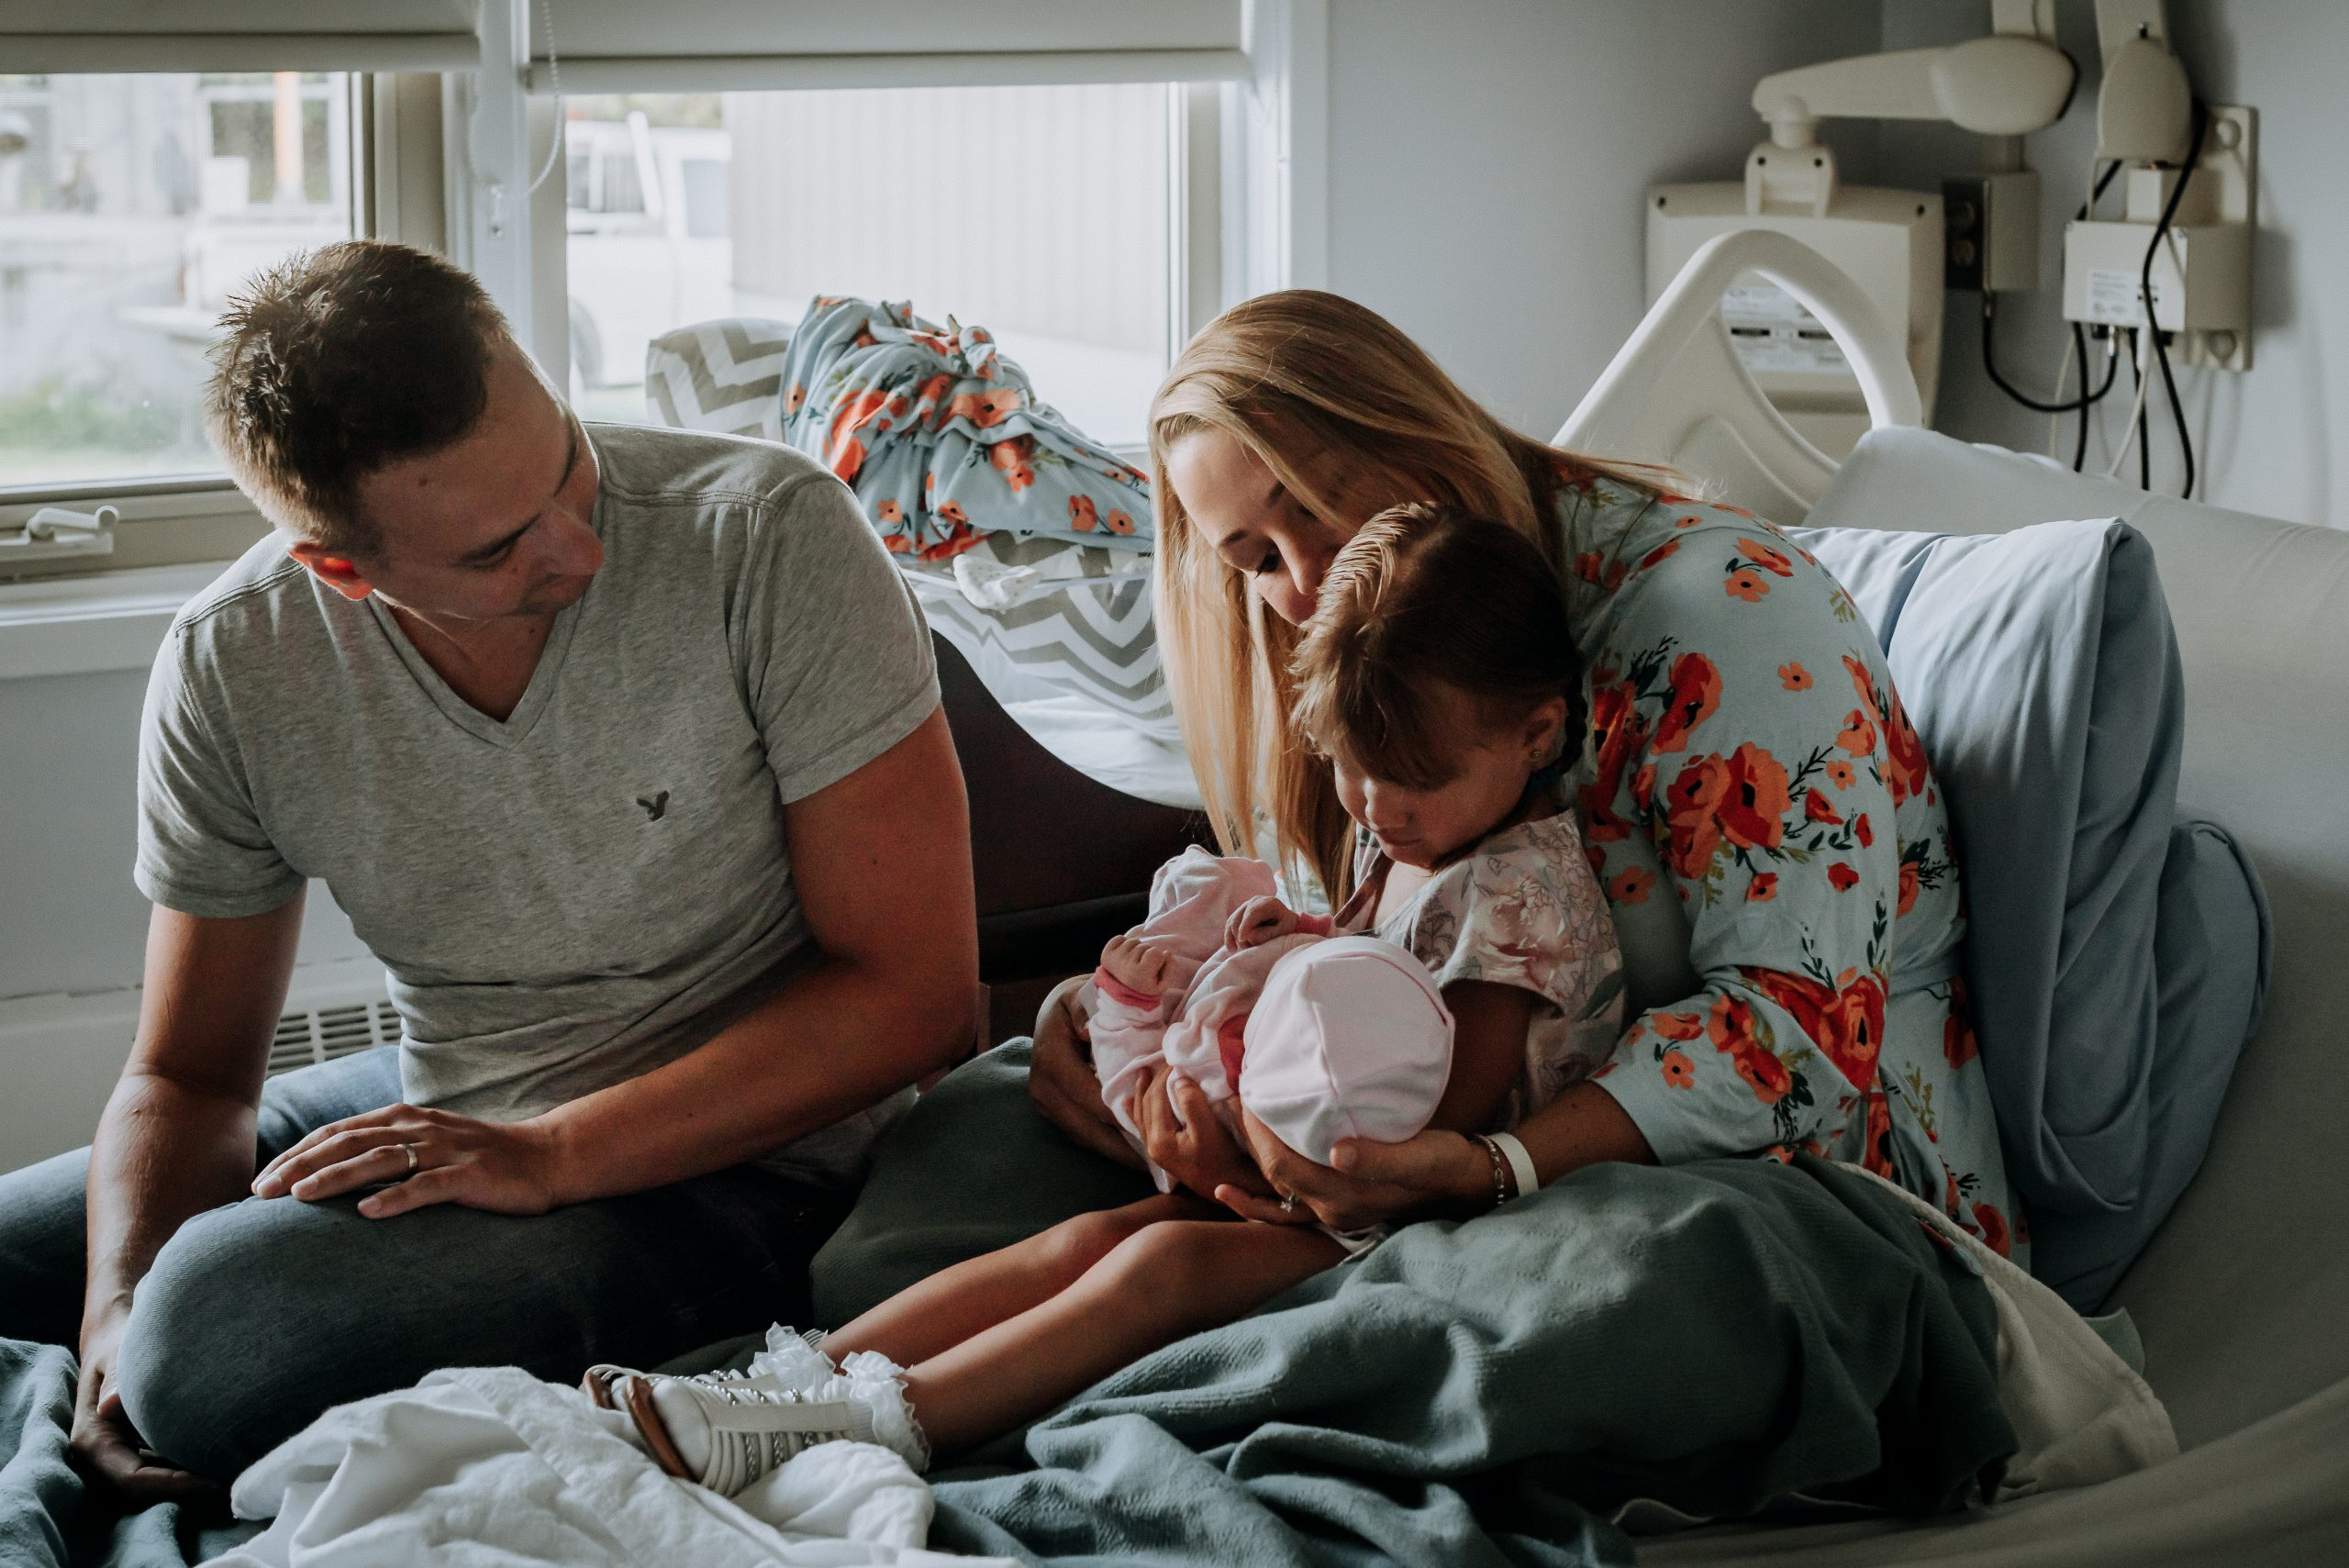 Family sits together in a hospital bed helping their toddler hold their new baby image taken by birth photographer jena lee photographs in golden bc